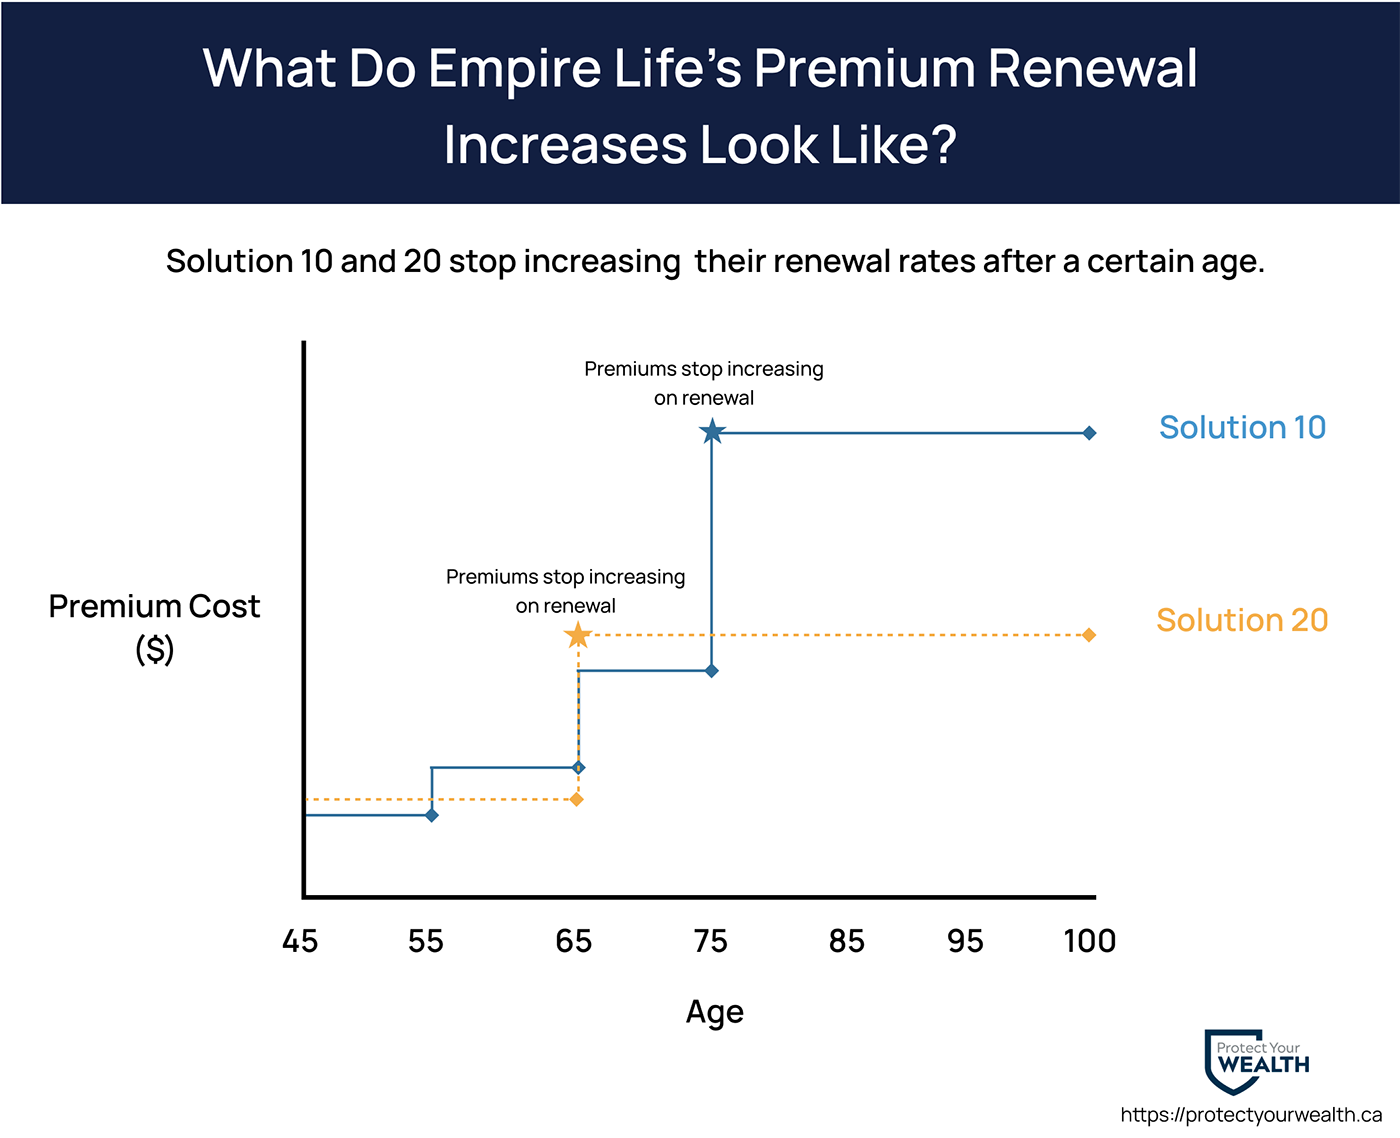 Empire Life's Solution 10 and 20 premiums increase after each term renewal increases until age 75 and 65 respectively. For every term renewal after that age, premiums are level.